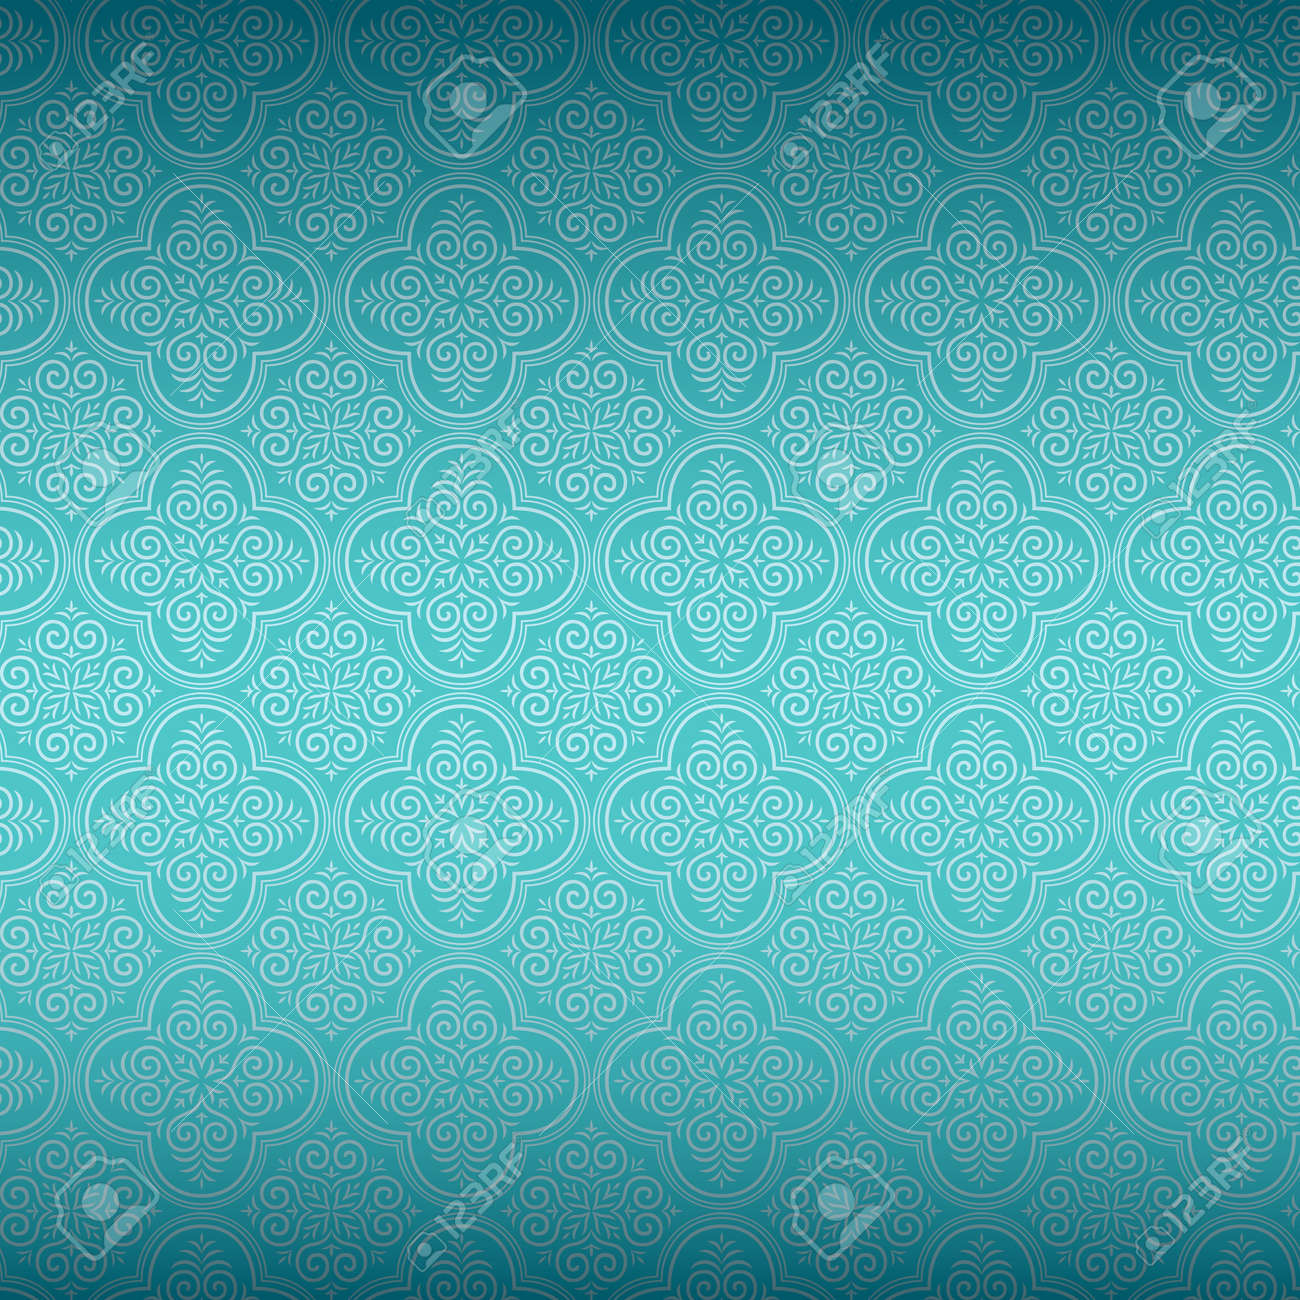 Turquoise Wallpaper Stock Vector Illustration And Royalty